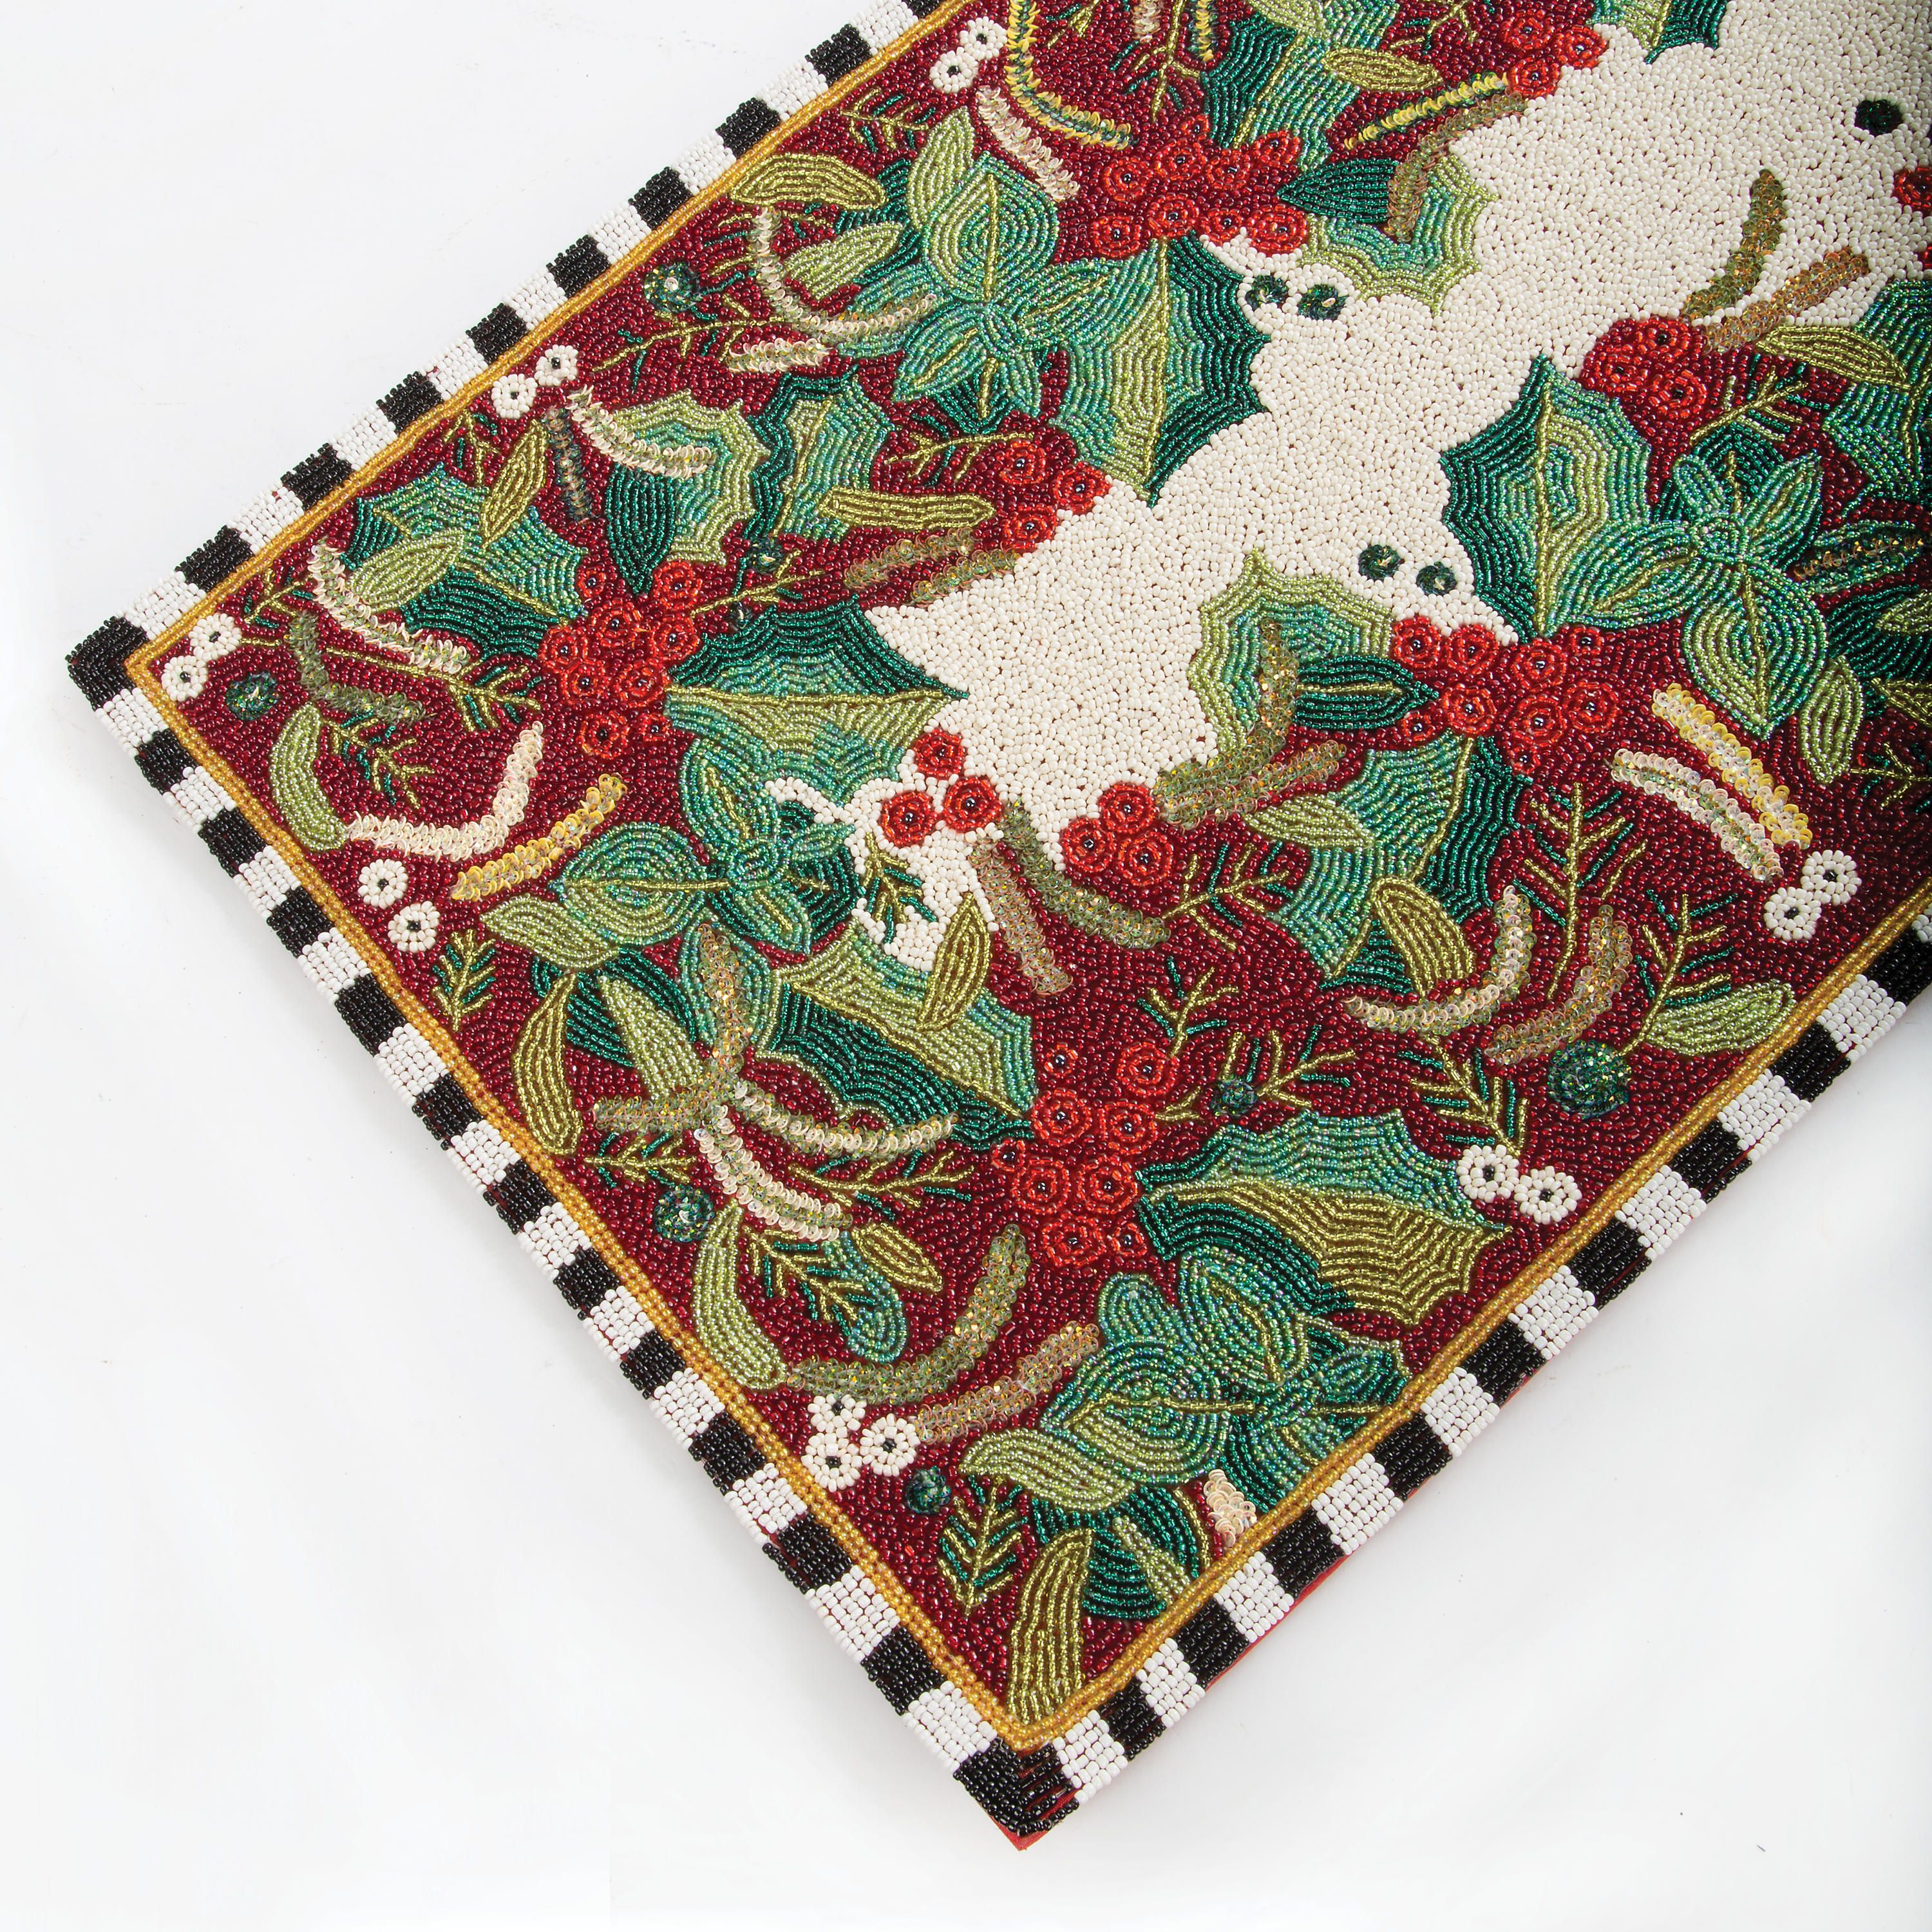 Mackenzie Childs Holly Amp Berry Beaded Table Runner 36 Mackenzie Childs Bohemian Rug Table Runners